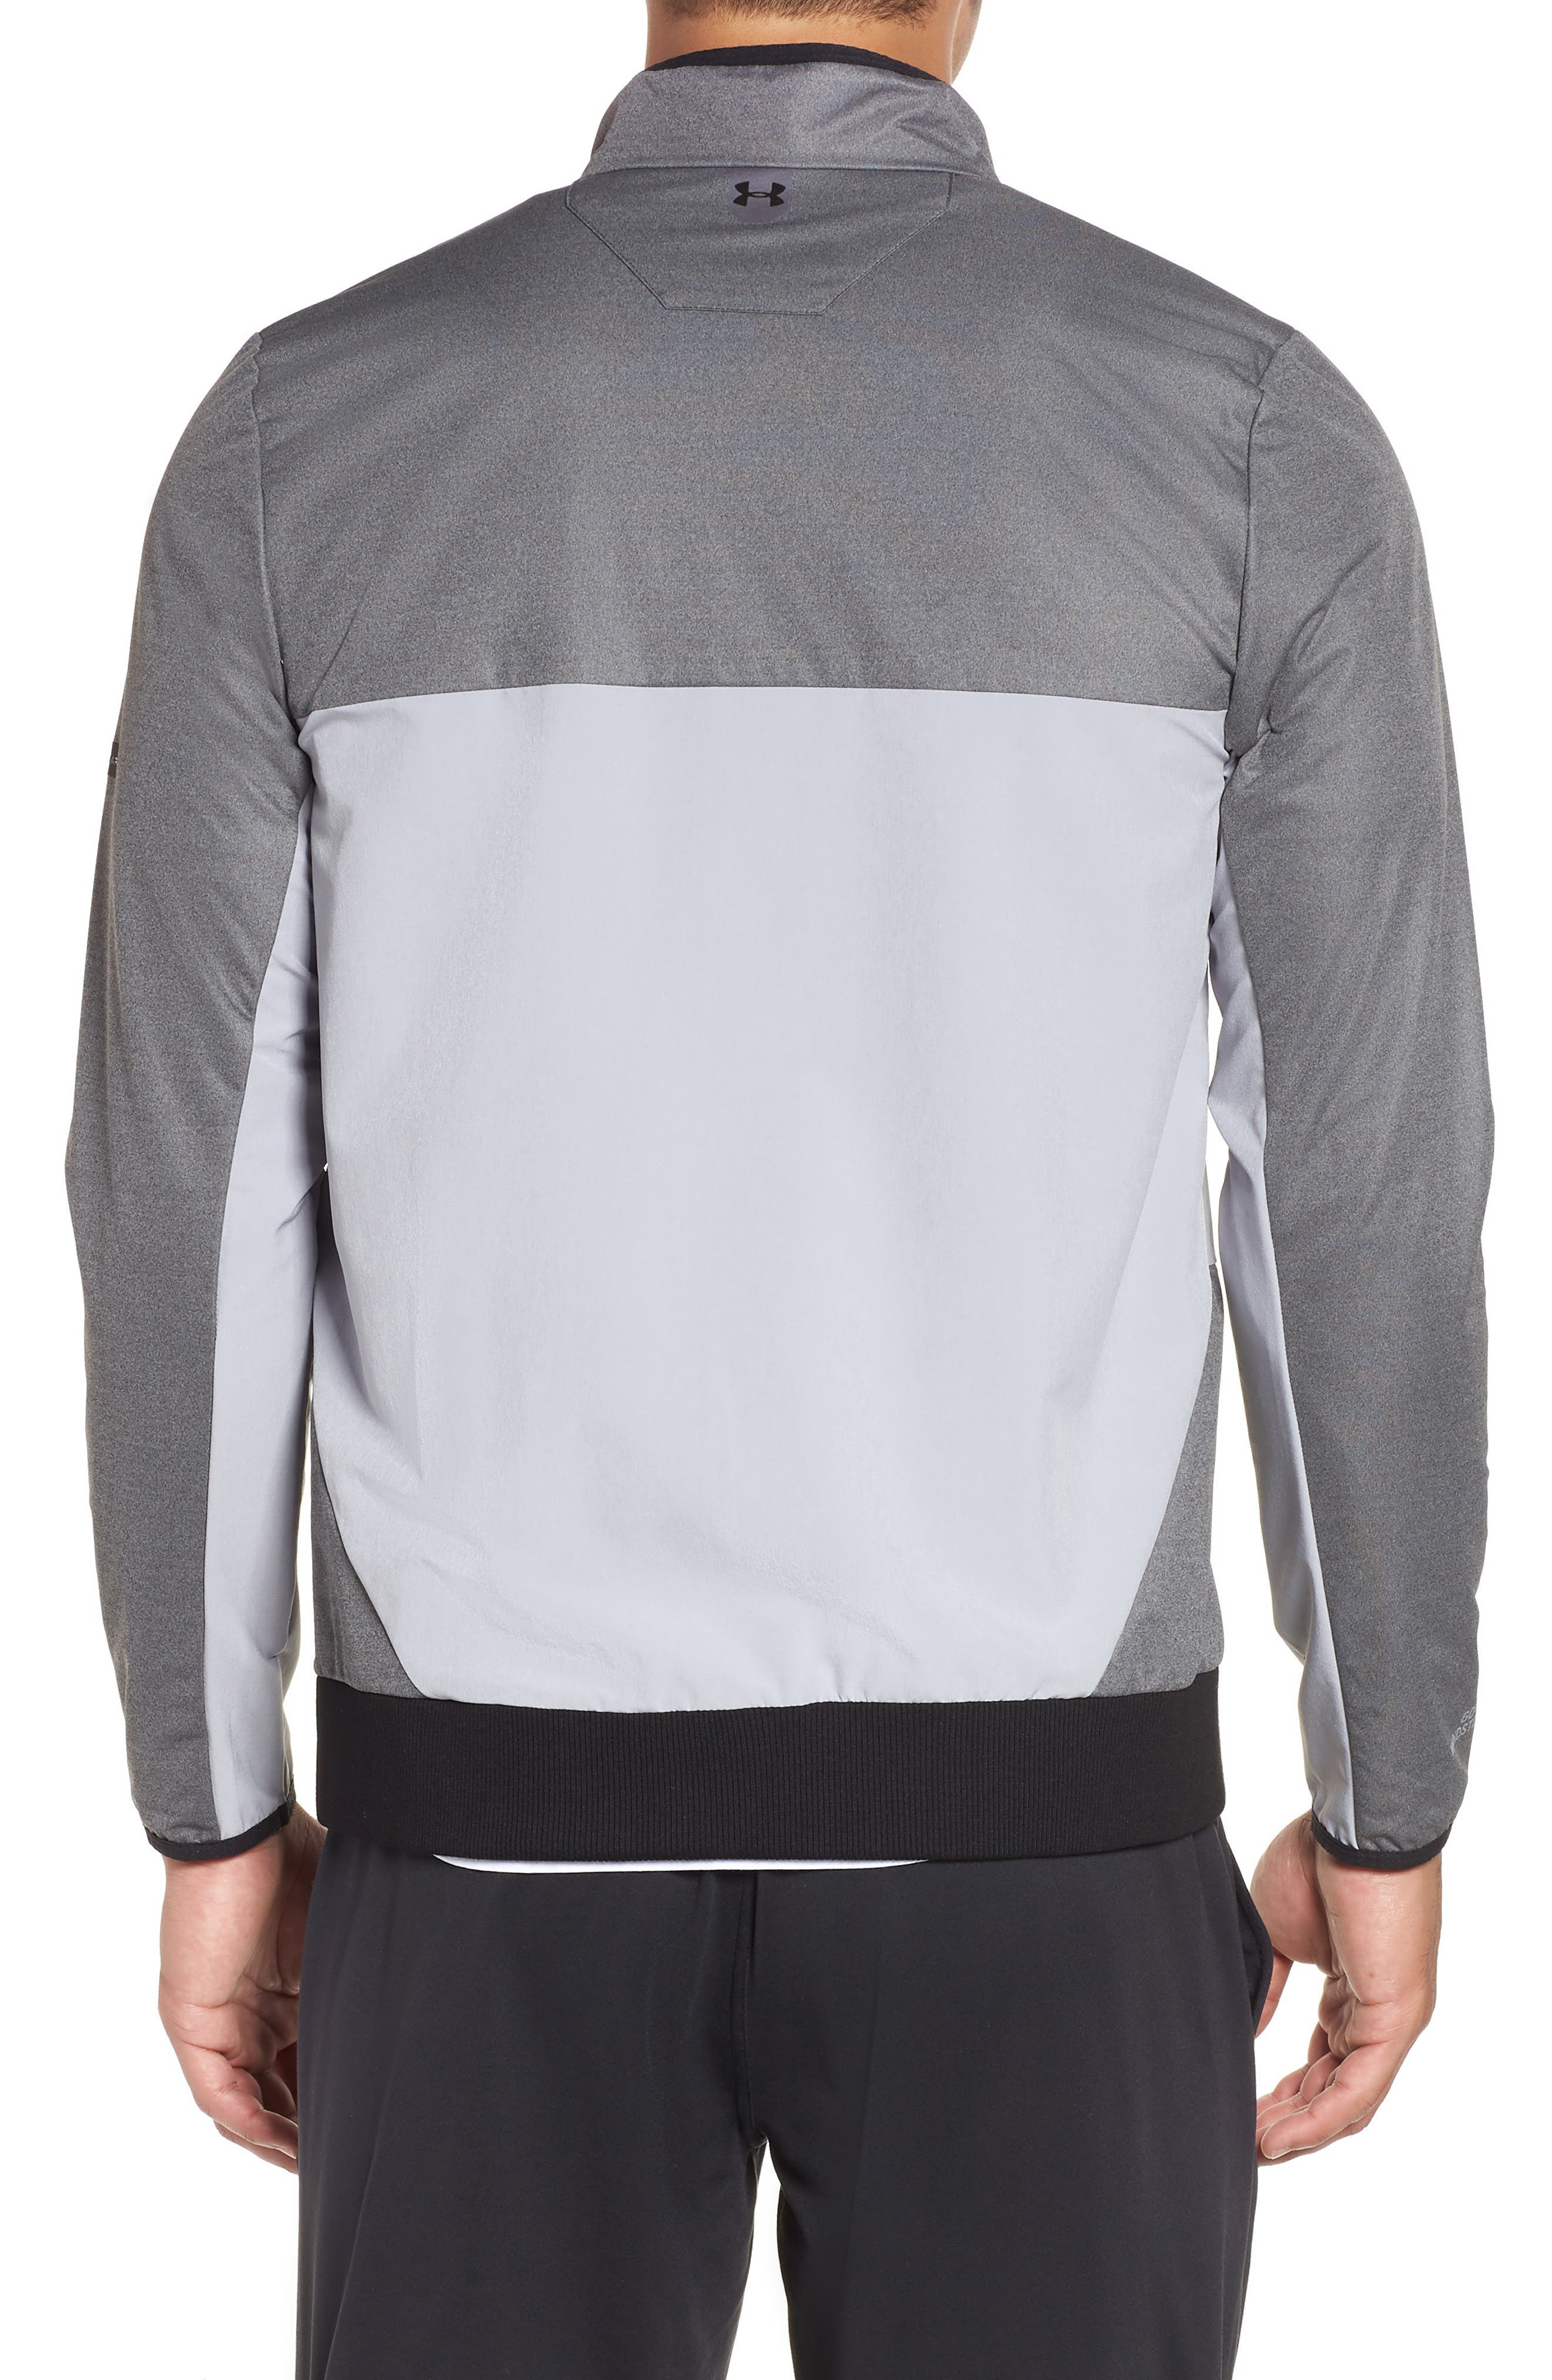 Gore<sup>®</sup> Windstopper<sup>®</sup> Full Zip Jacket,                             Alternate thumbnail 2, color,                             CHARCOAL / OVERCAST